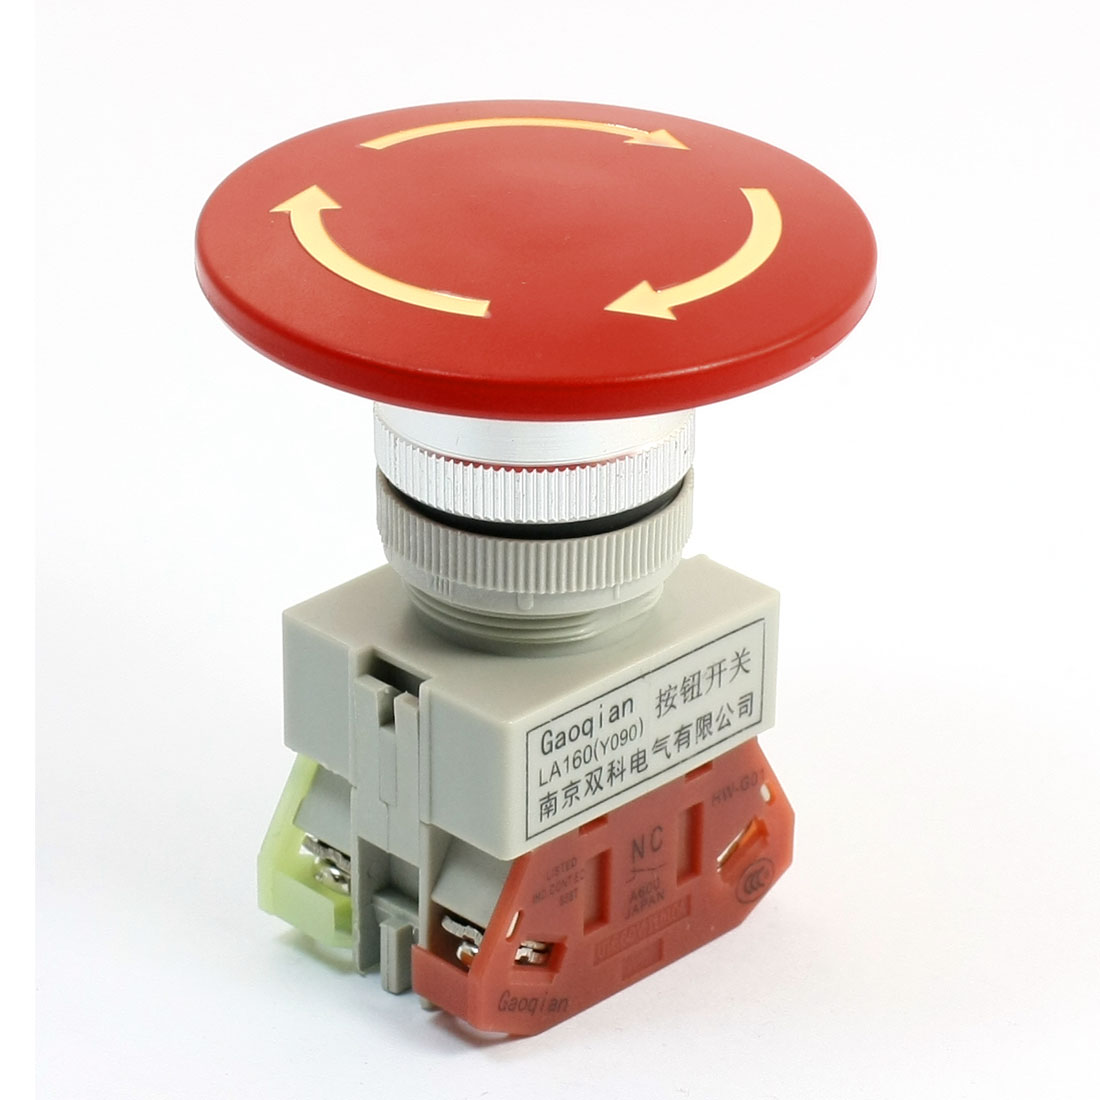 660V 10A Locking DPST NO NC Mushroom Head Emergency Stop Pushbutton Switch